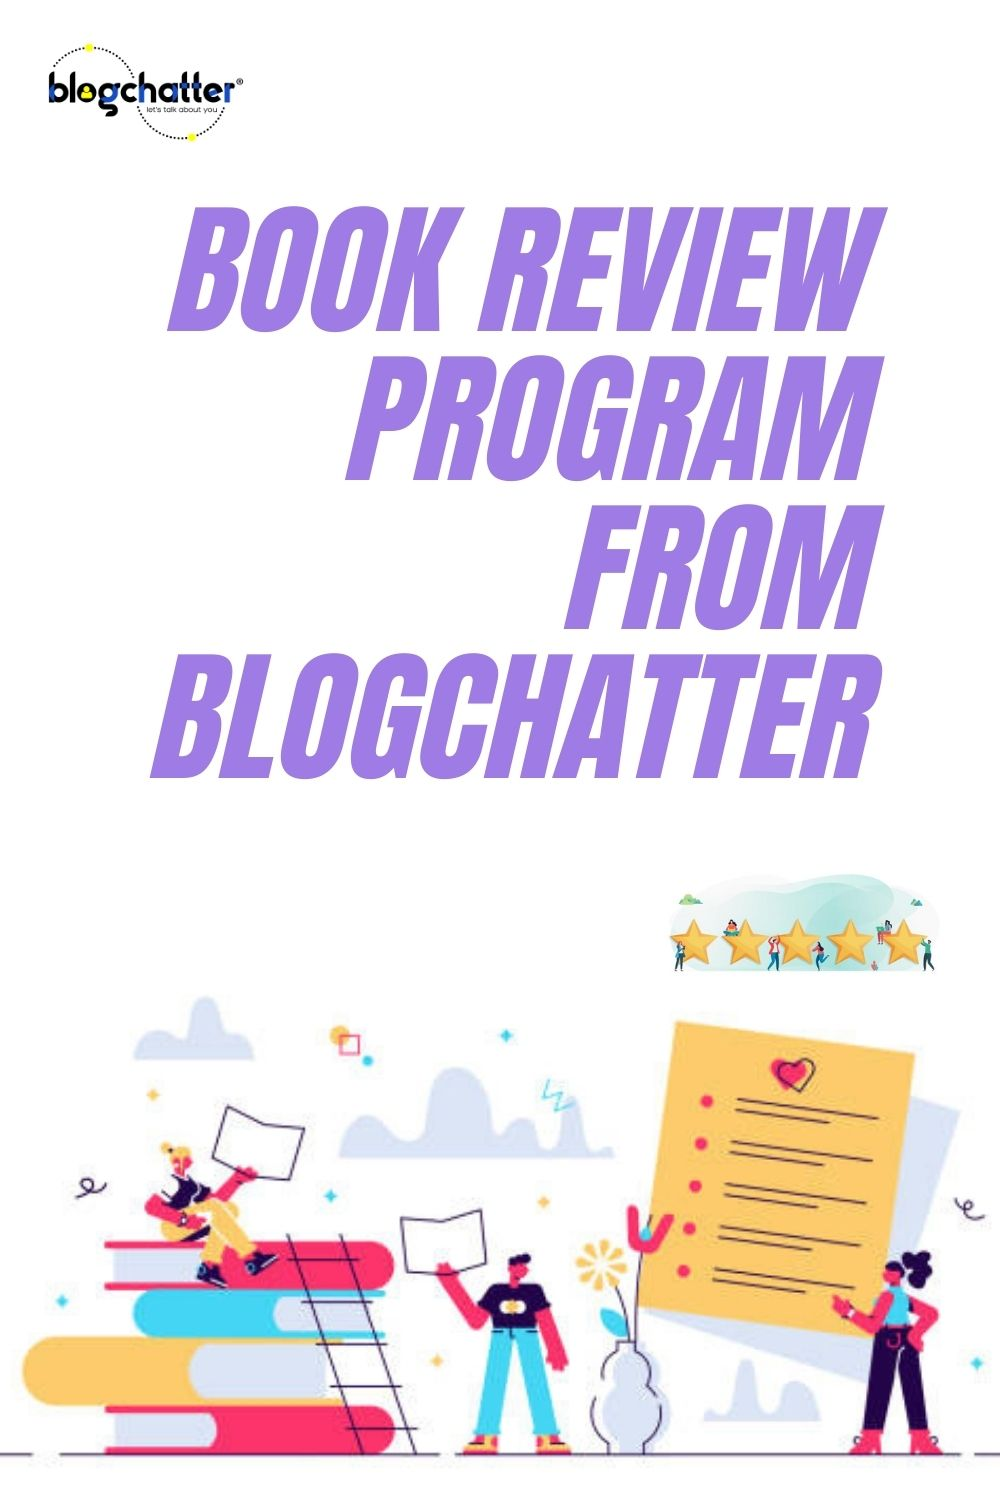 Book Review earn money